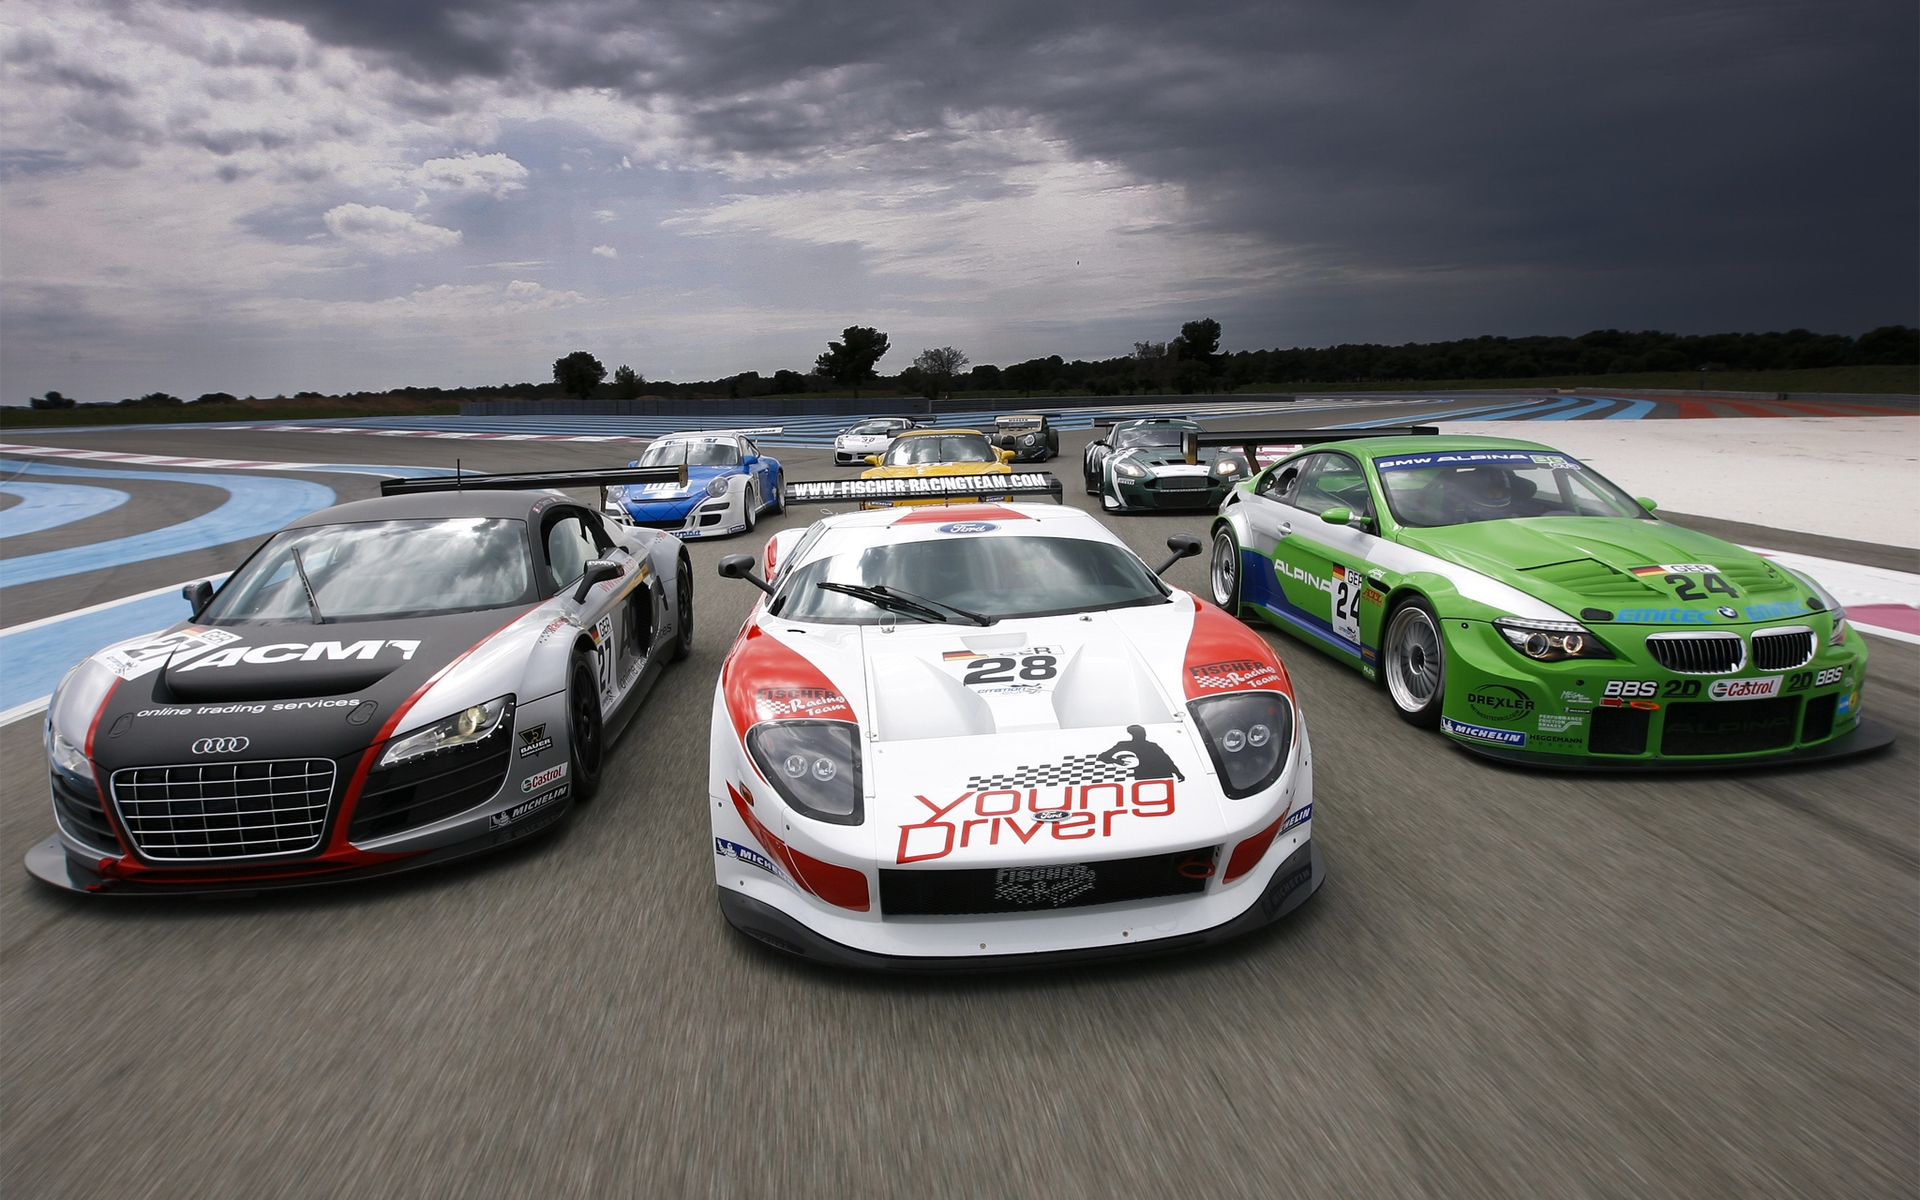 Sport Cars for 1920 x 1200 widescreen resolution